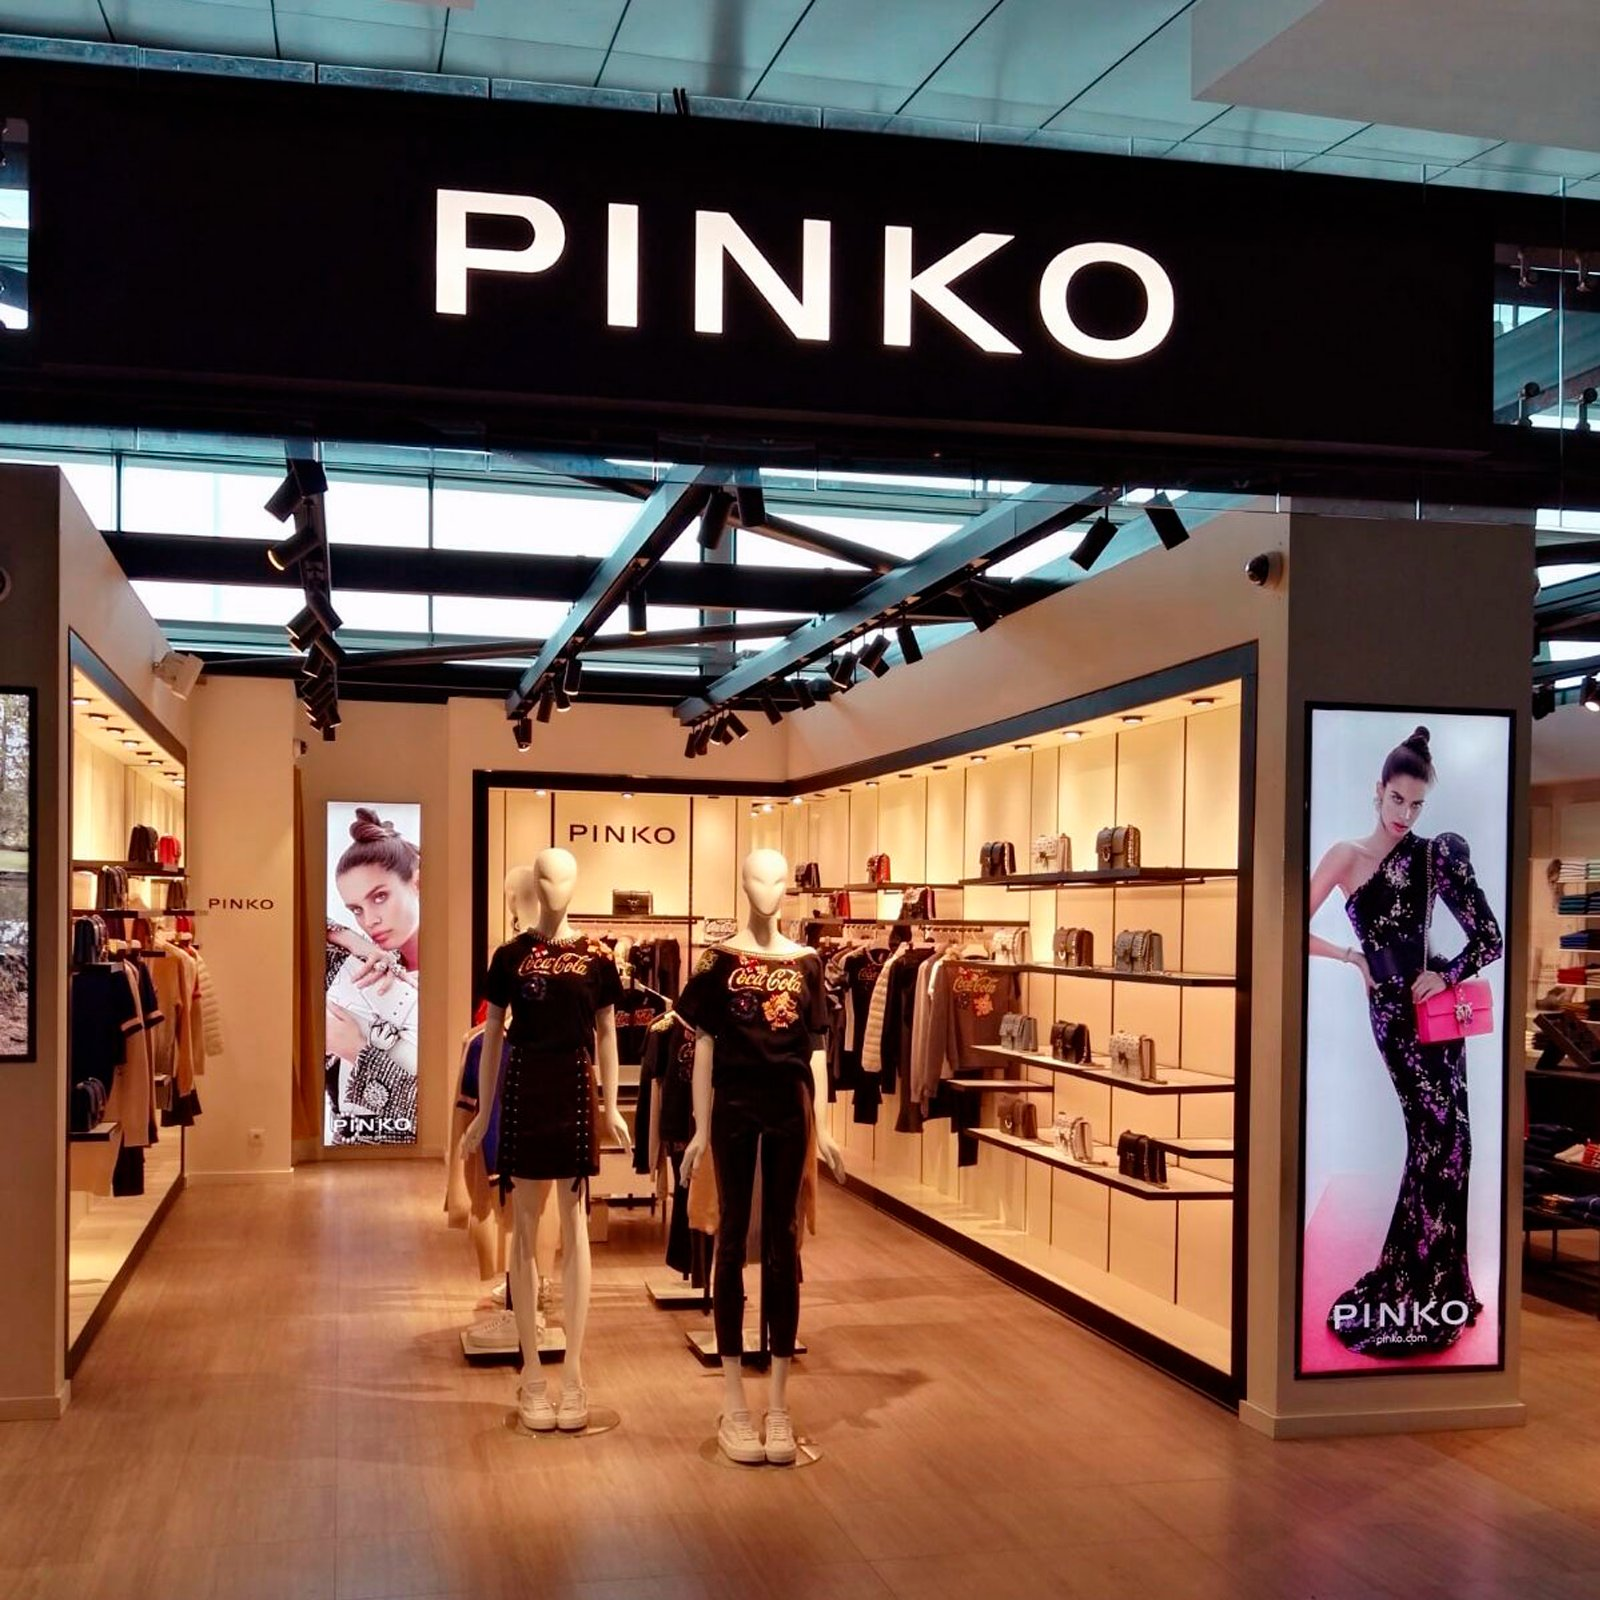 PINKO (AEROPORTO DO PORTO)